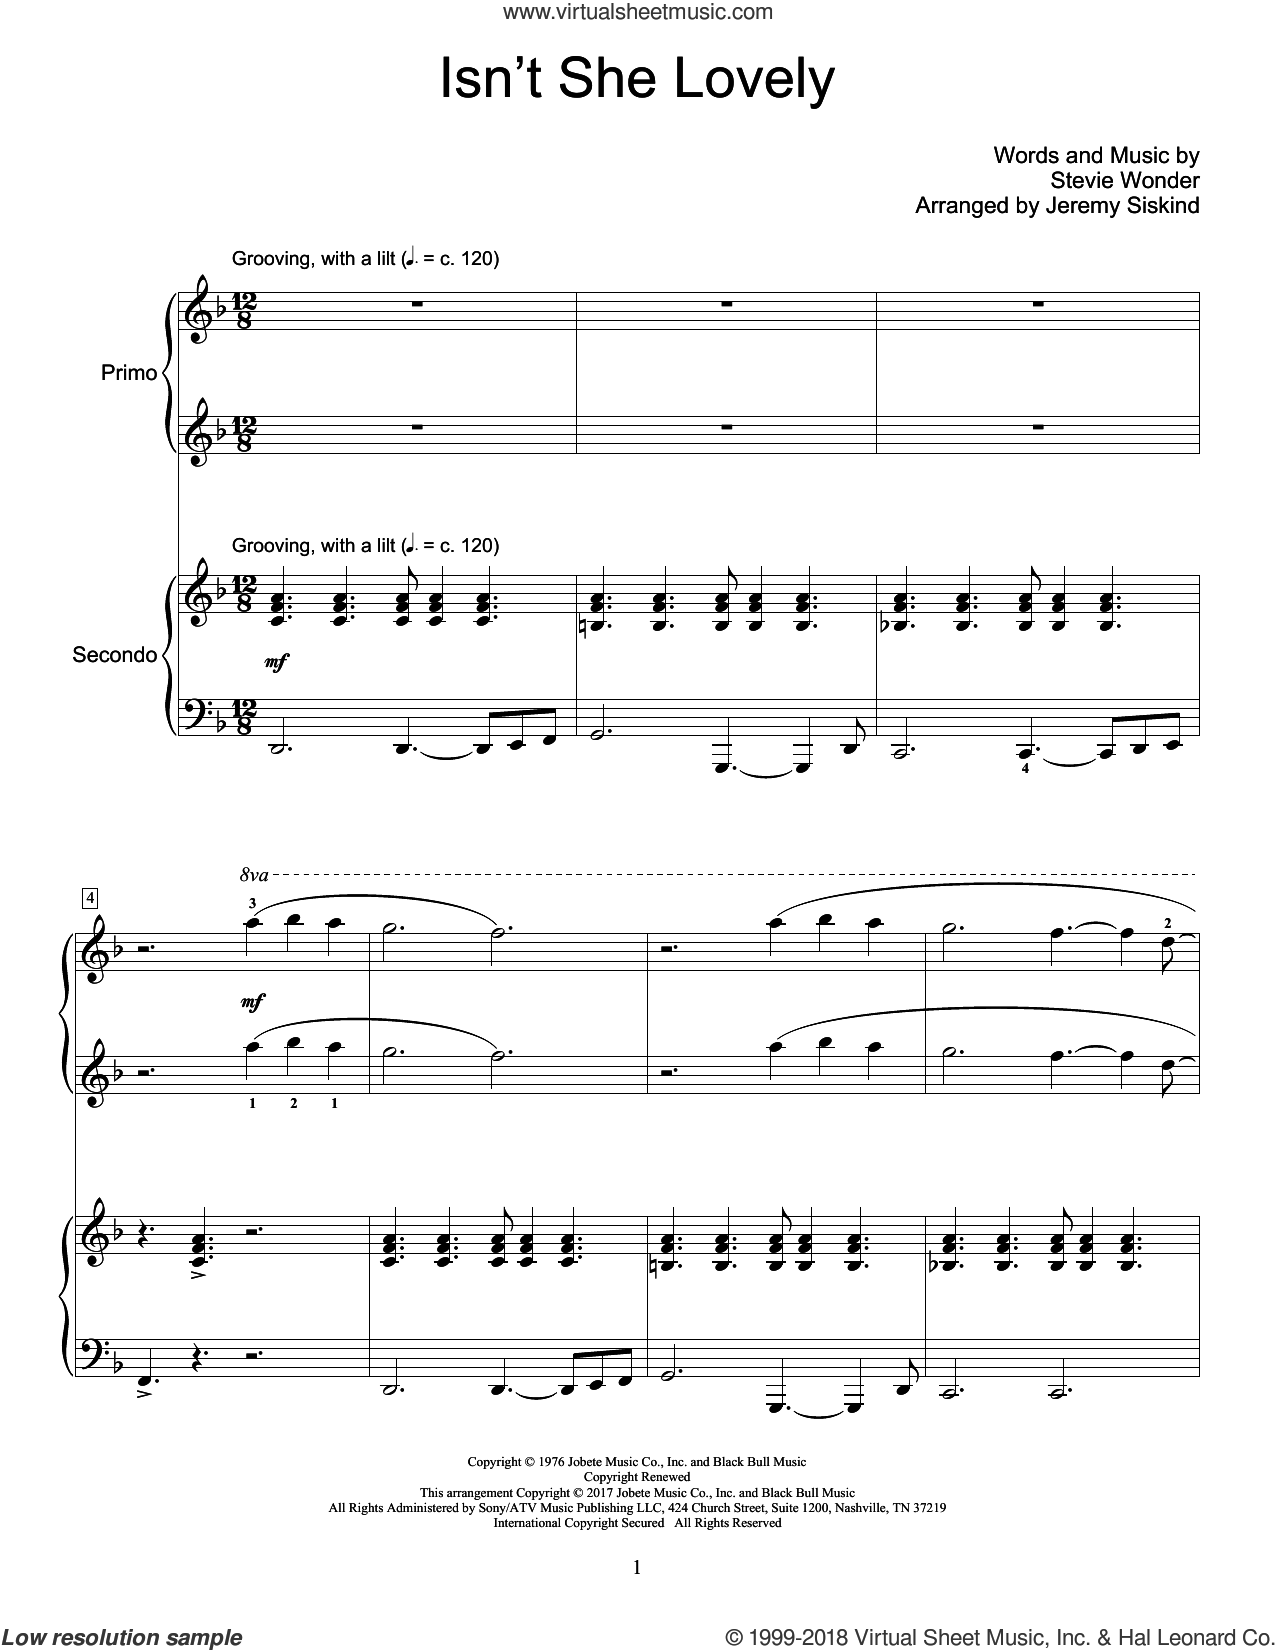 Isn't She Lovely sheet music for piano four hands by Stevie Wonder and Jeremy Siskind, intermediate. Score Image Preview.